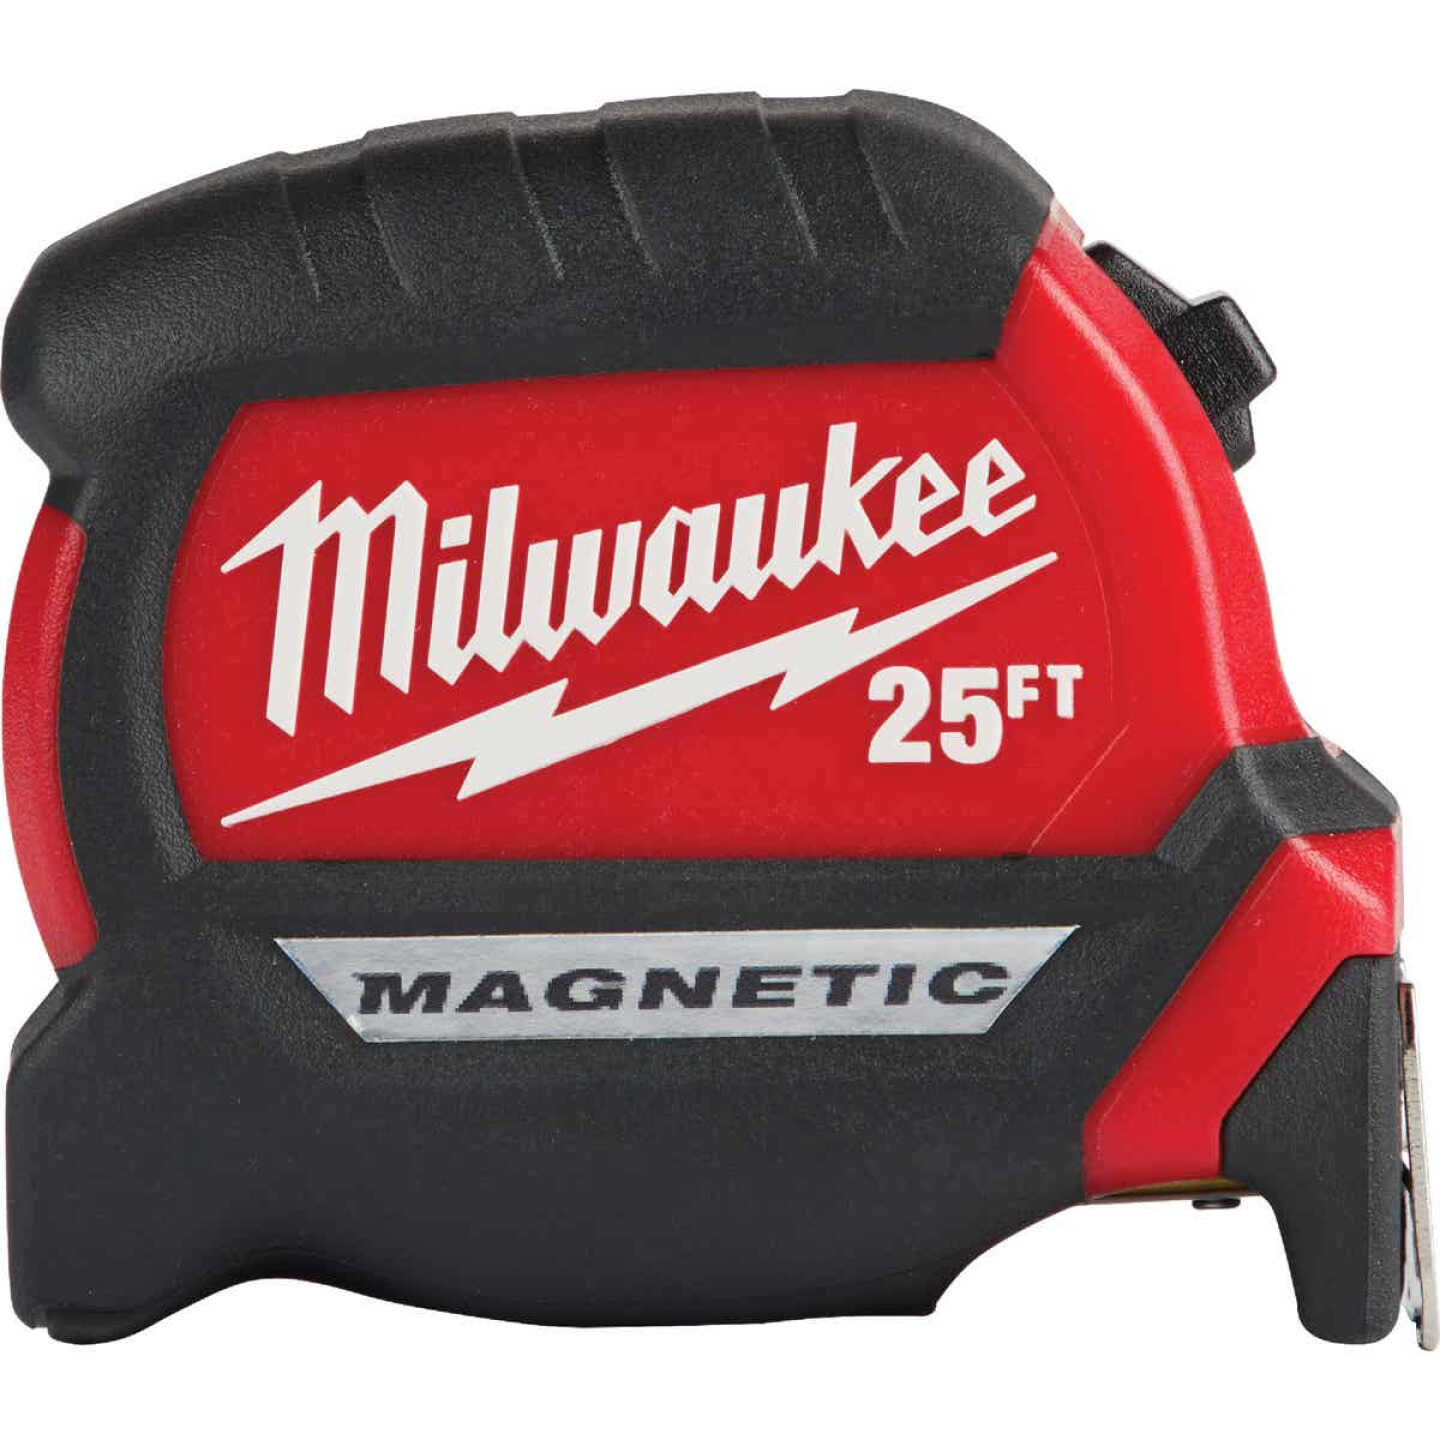 Milwaukee 25 Ft. Compact Wide Blade Magnetic Tape Measure Image 1